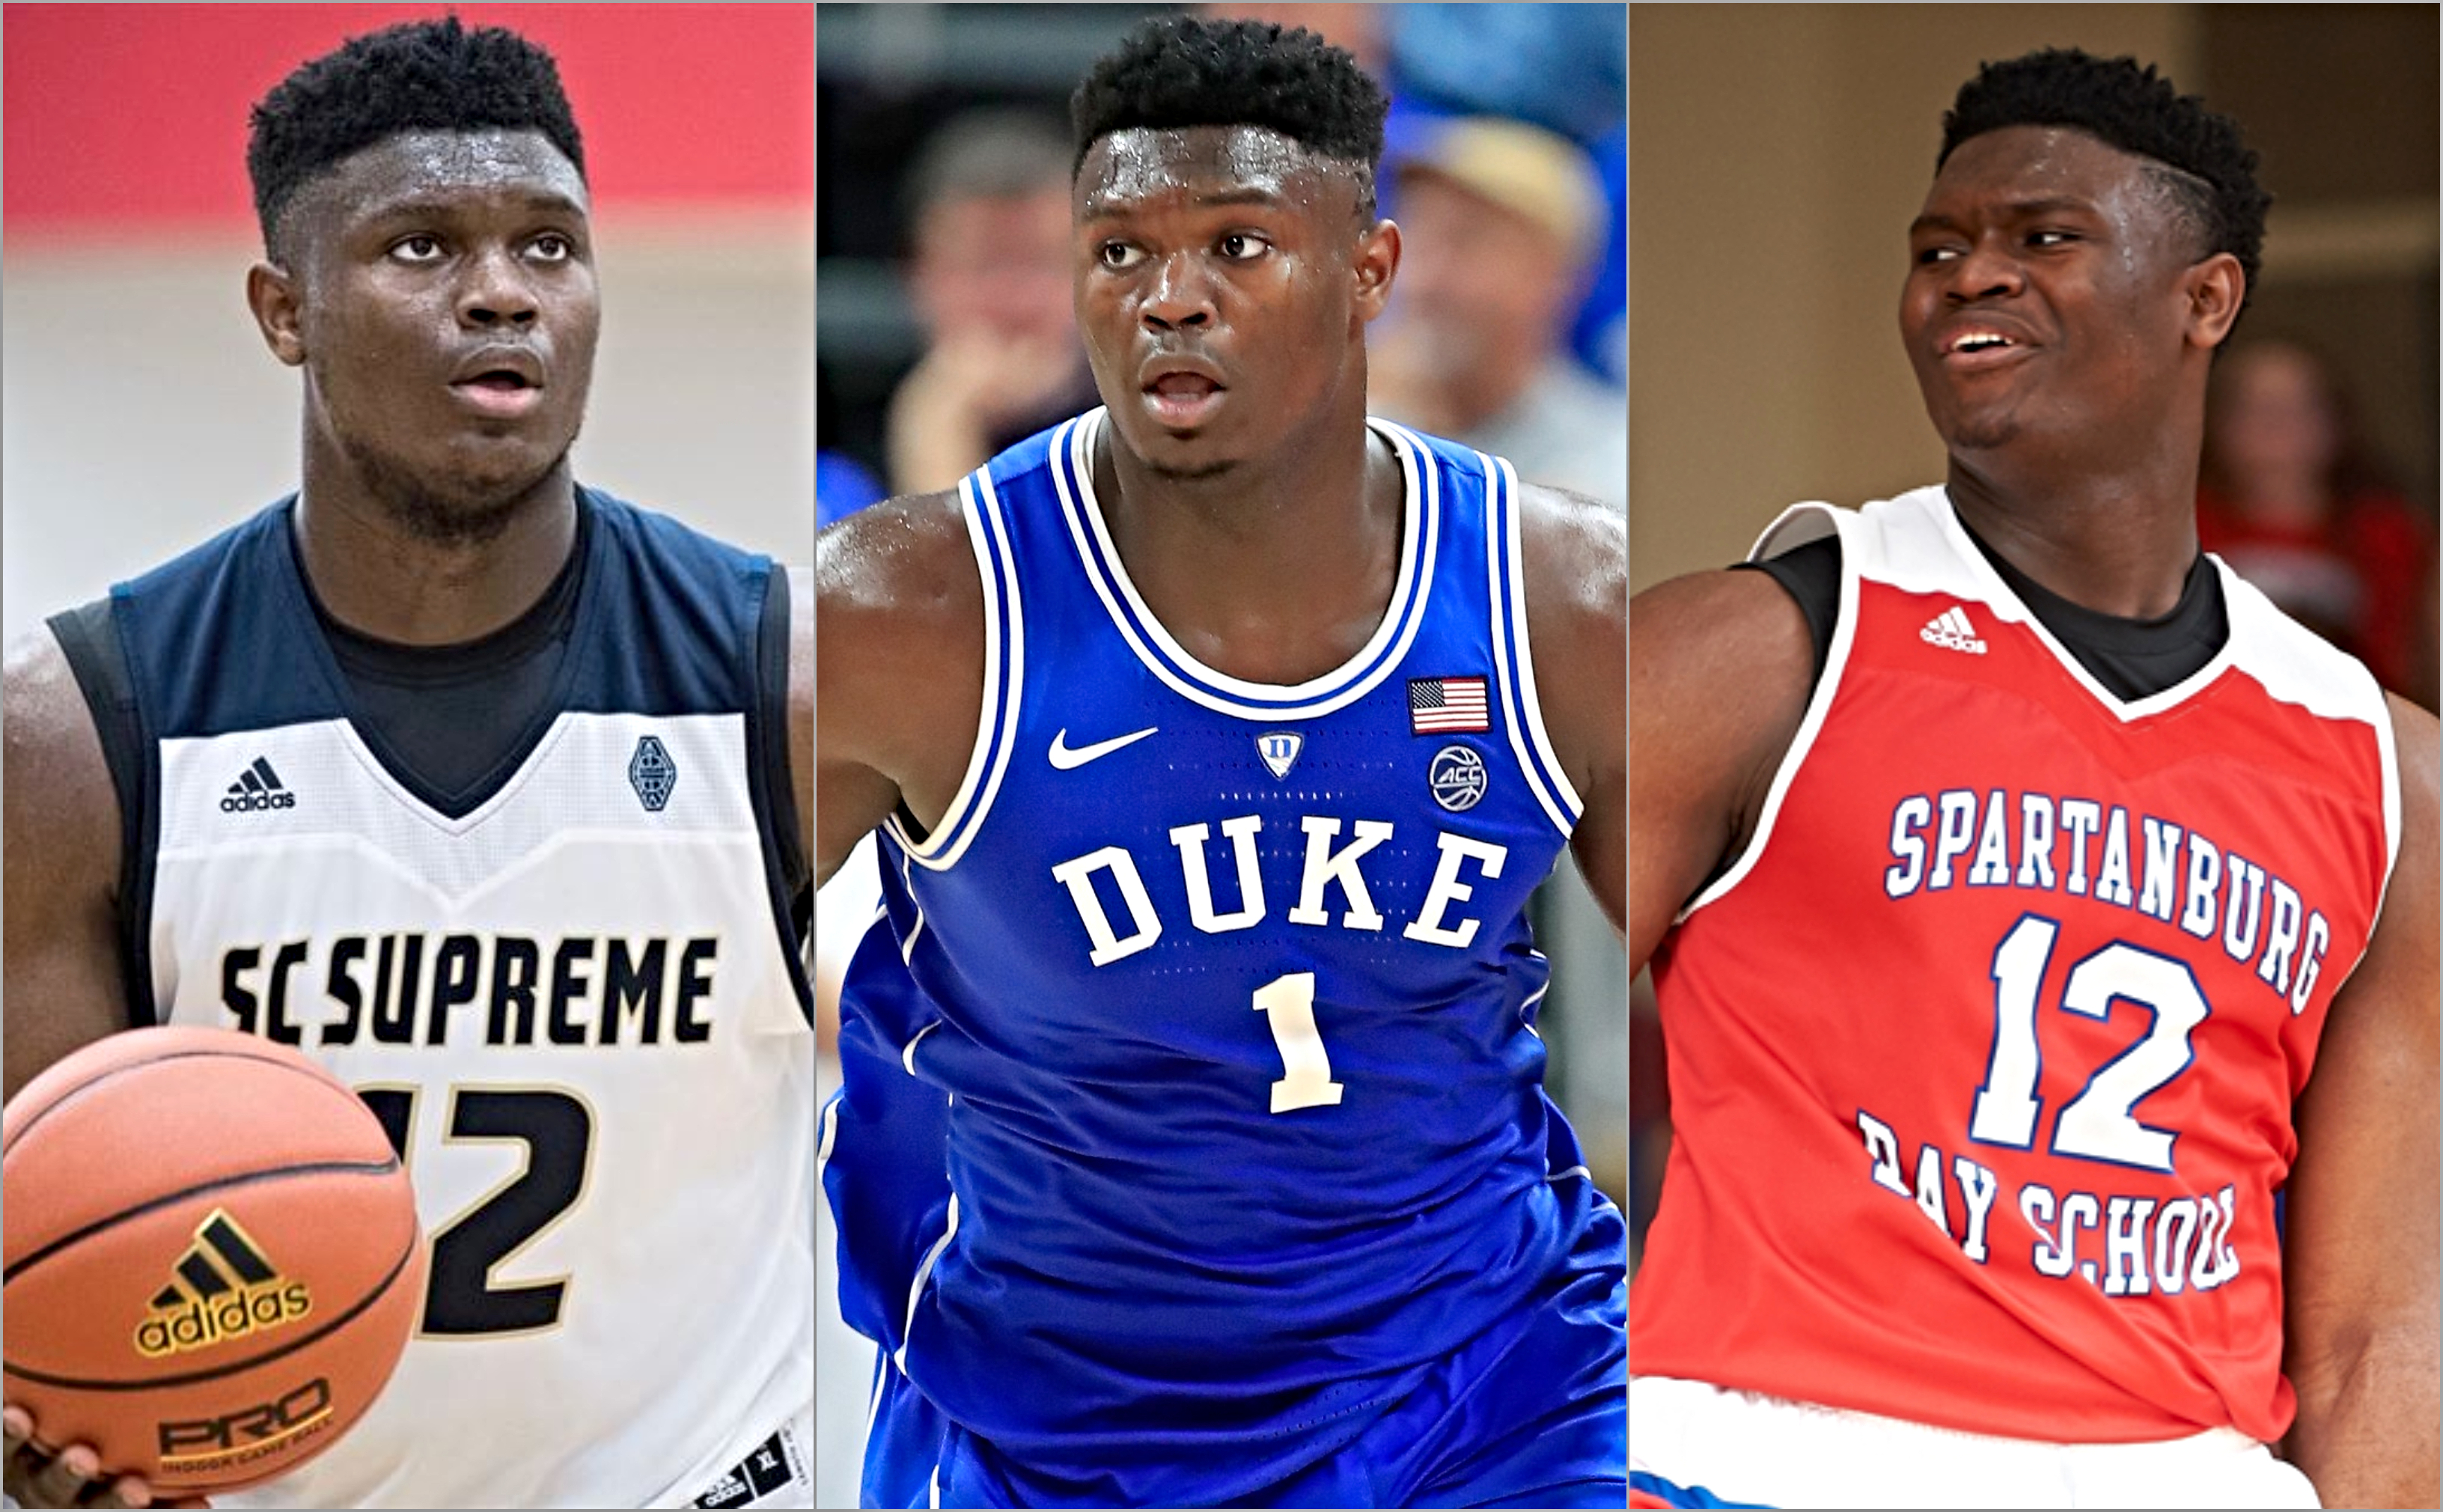 Zion Williamson in his AAU team, Duke Blue Devil and Spartanburg Day high school jerseys